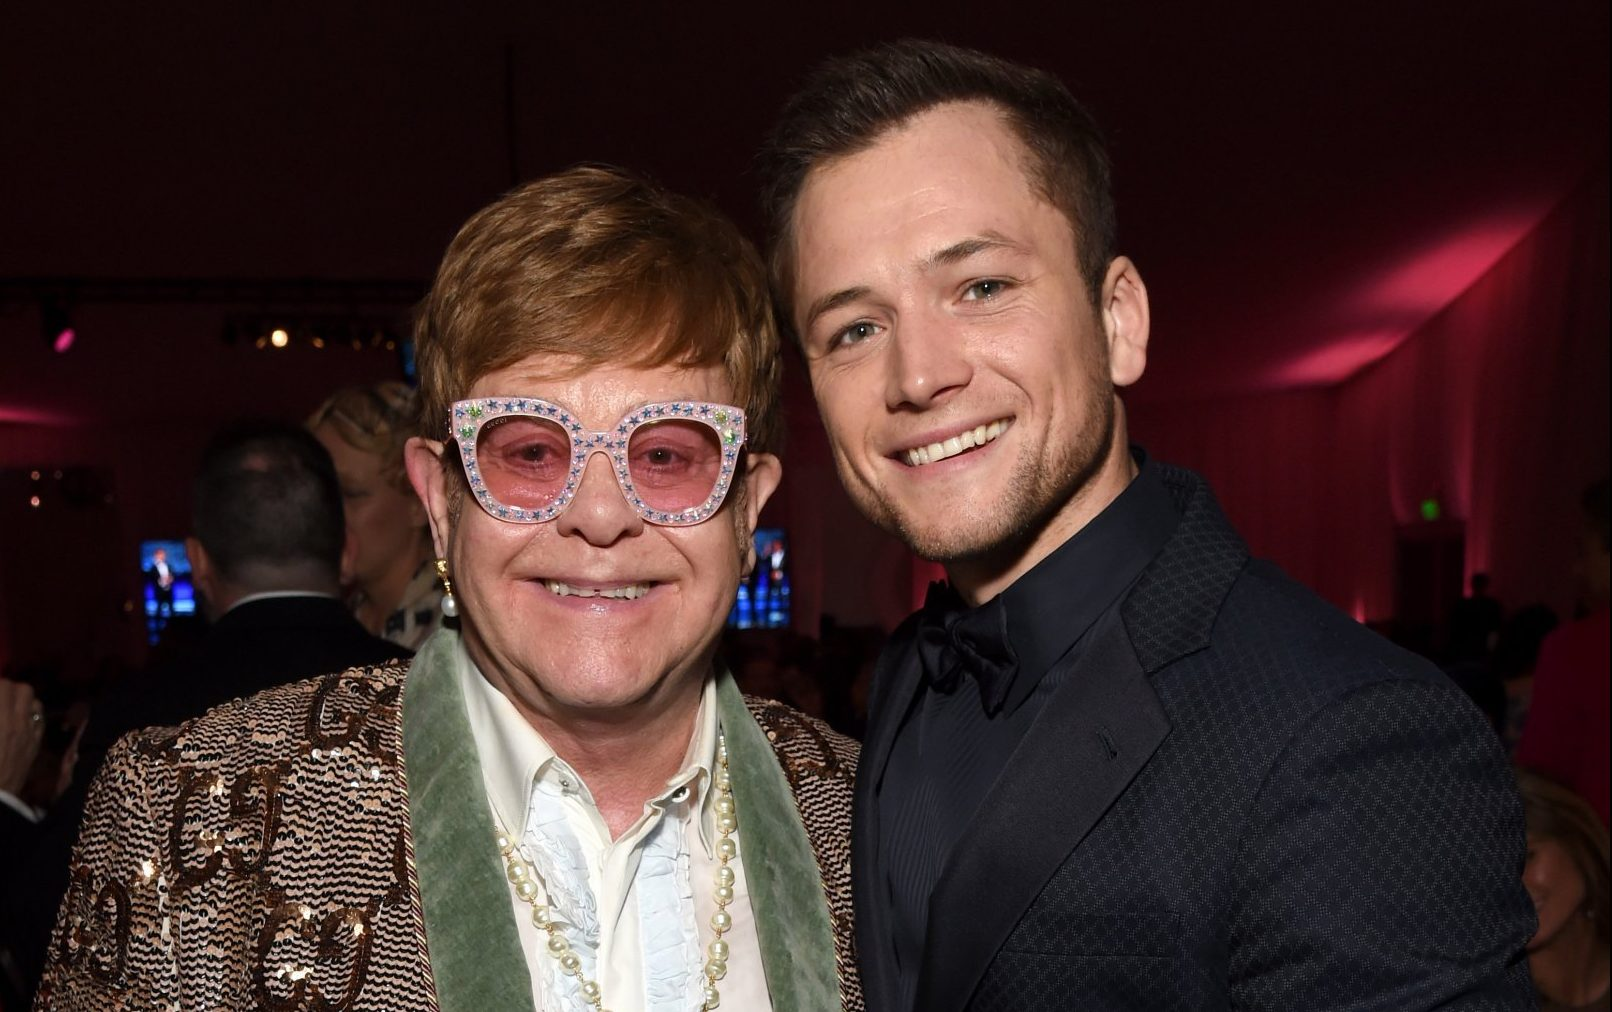 David Furnish jokes over Rocketman star Taron Egerton dressed as Elton John and fans are loving it